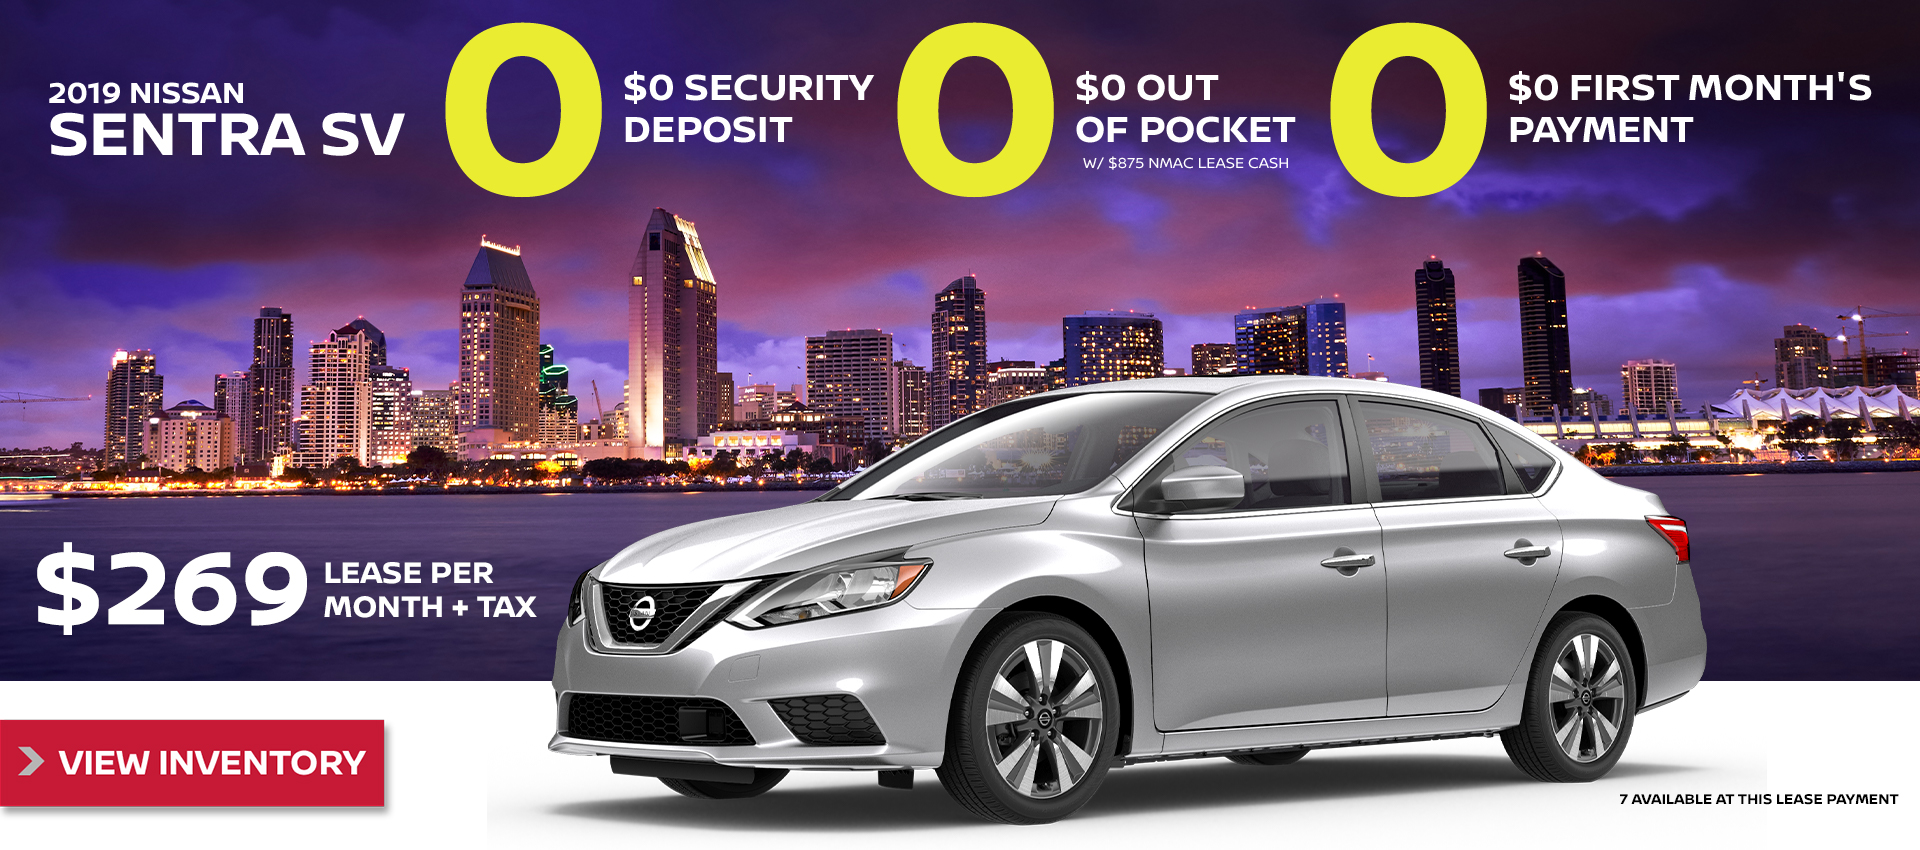 Mossy Nissan - Sentra $269 Lease HP